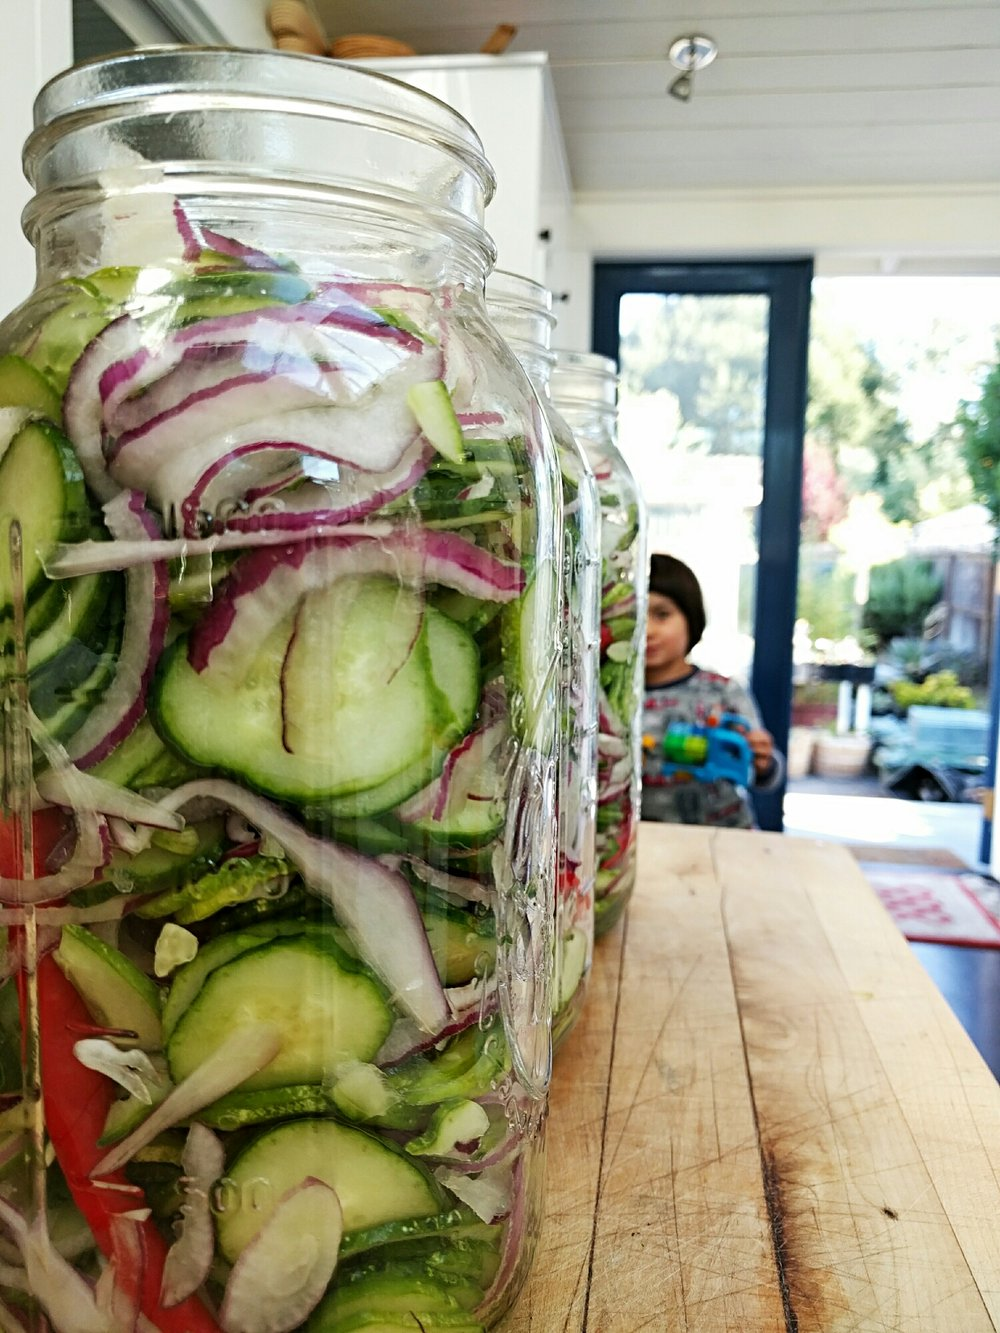 Sliced cucumber mixture just before pouring brine into jars